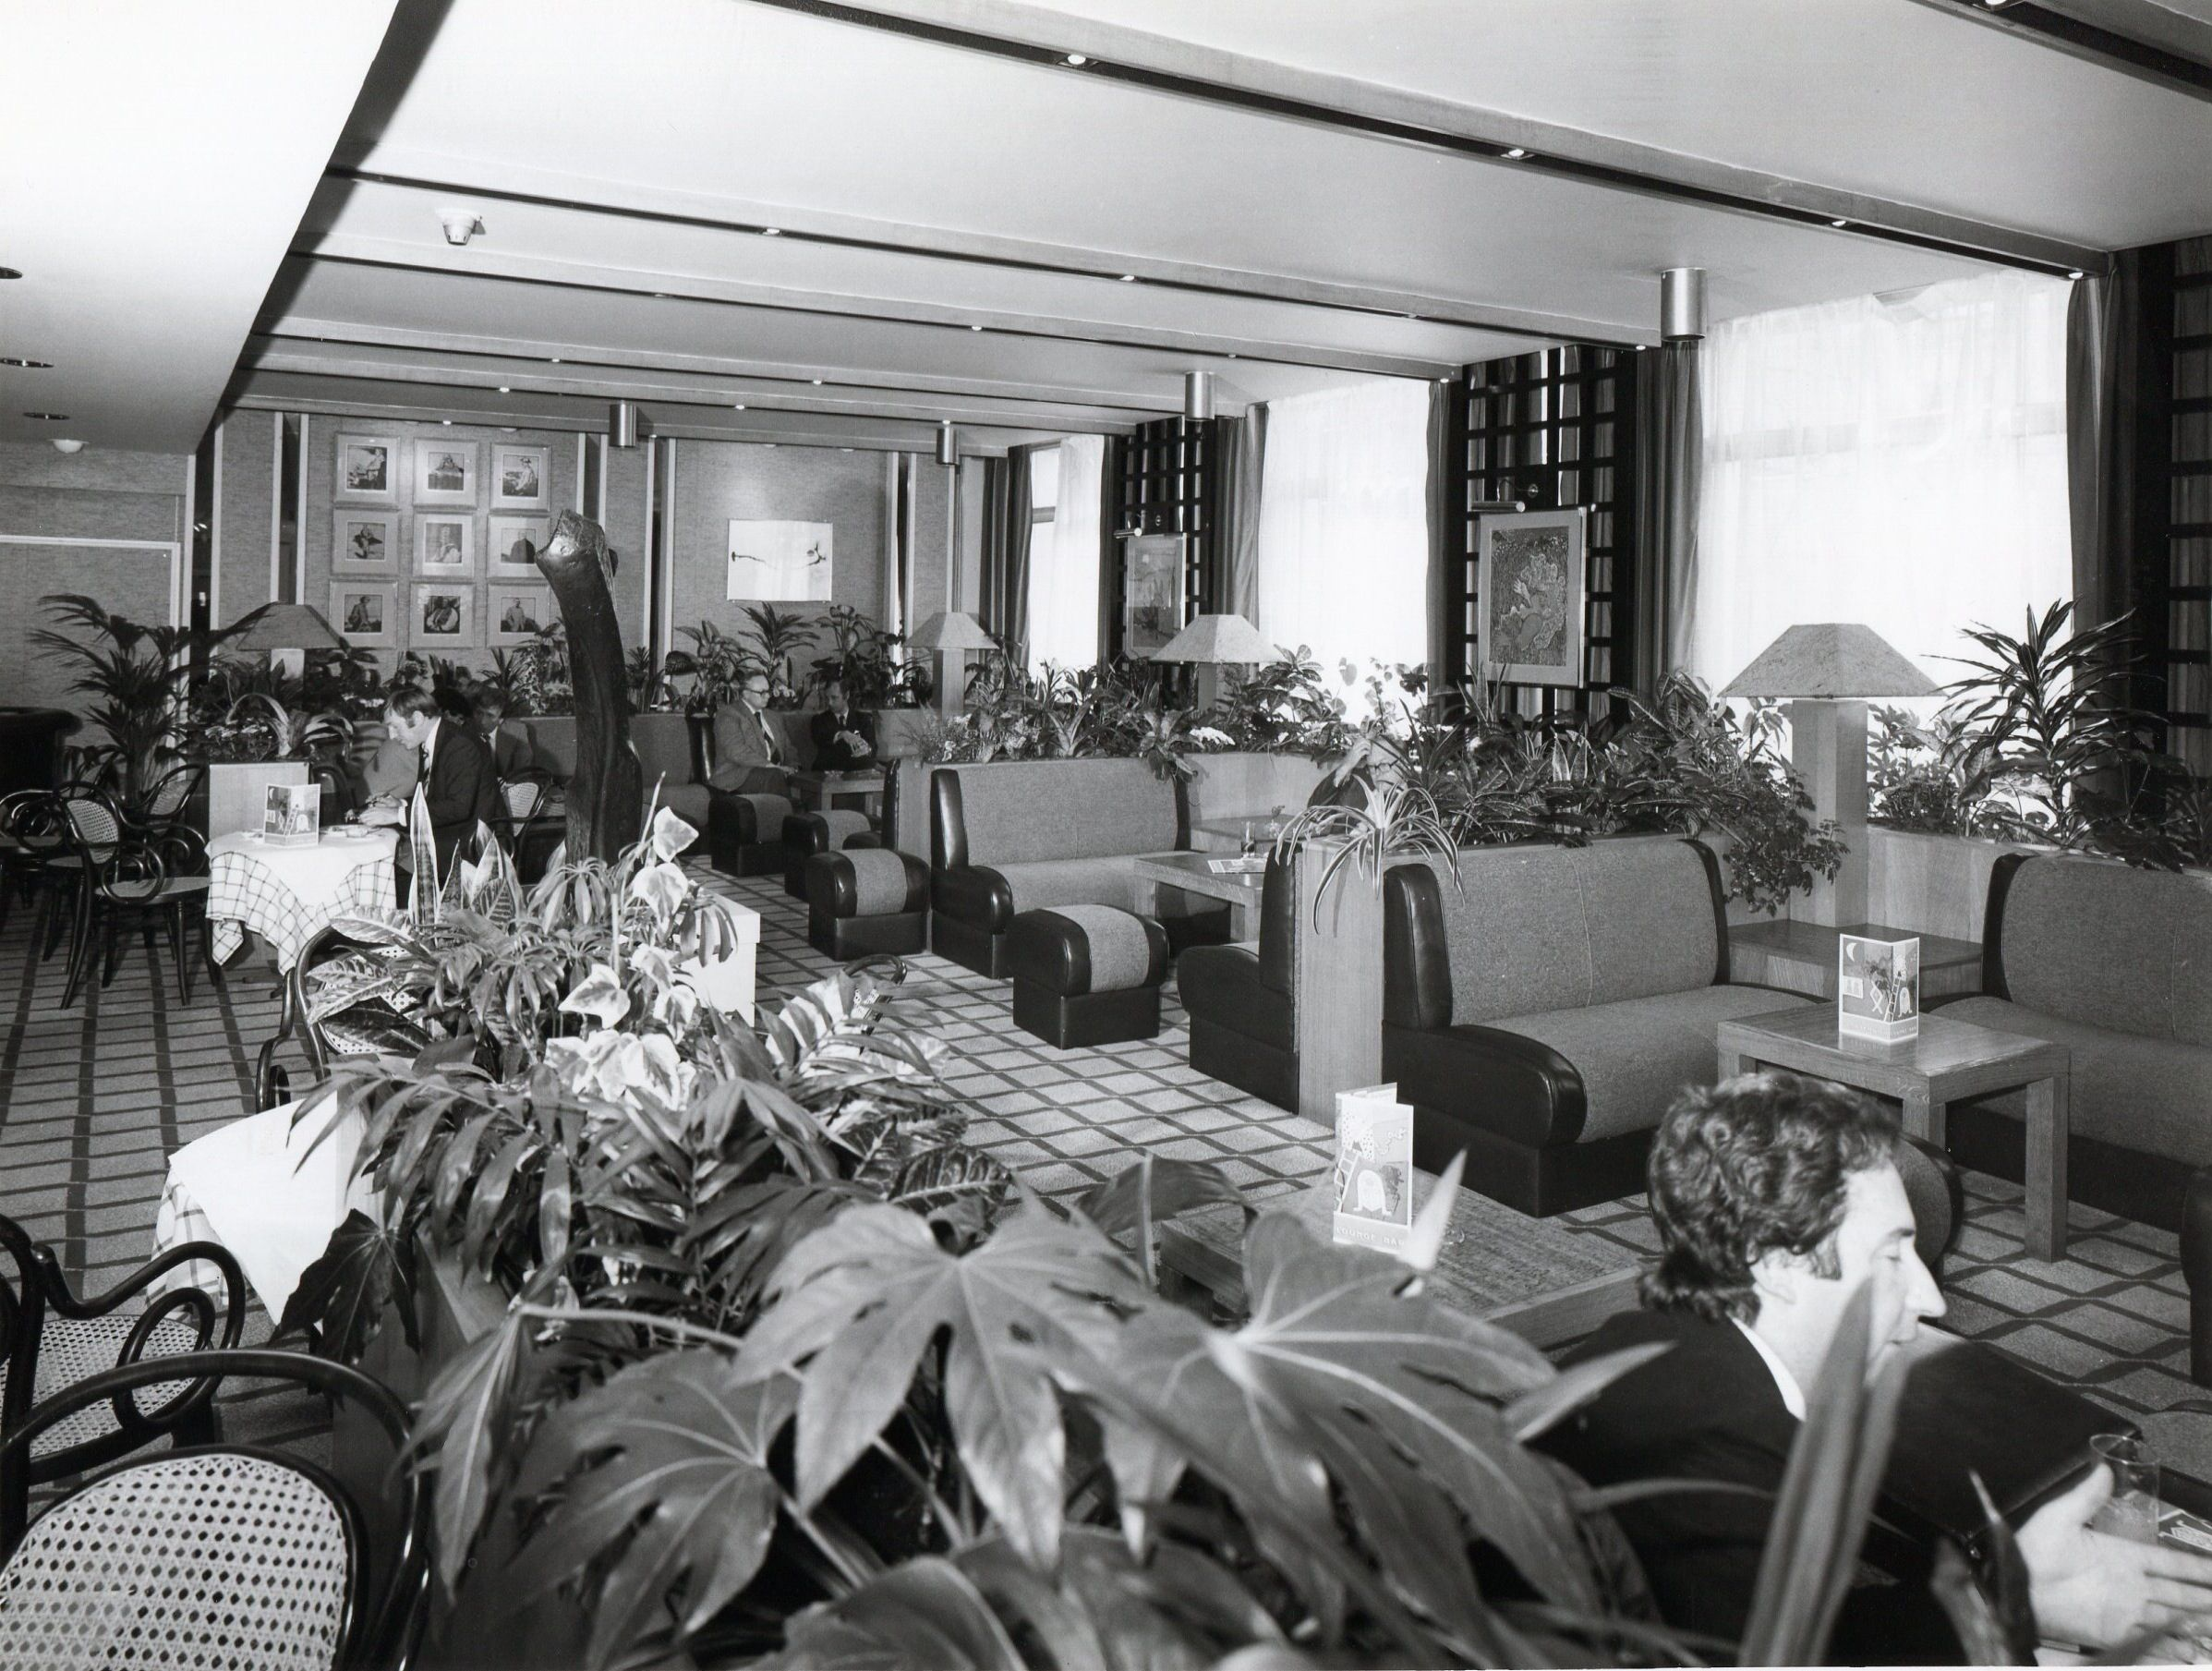 The current lounge certainly has less foliage